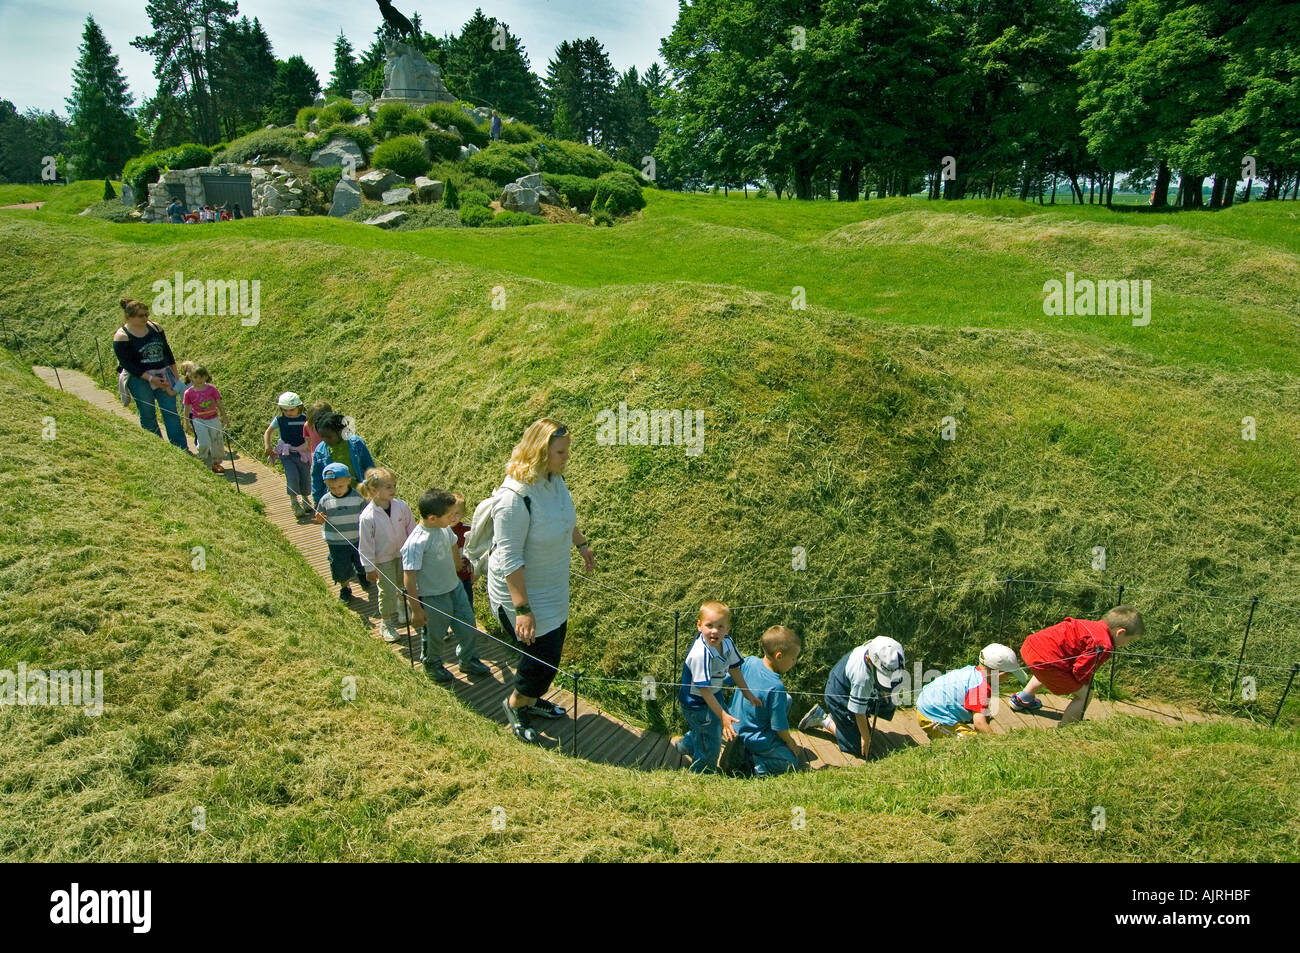 Somme France Schoolchildren experience the First World War trenches at Auchonvillers Memorial Park - Stock Image